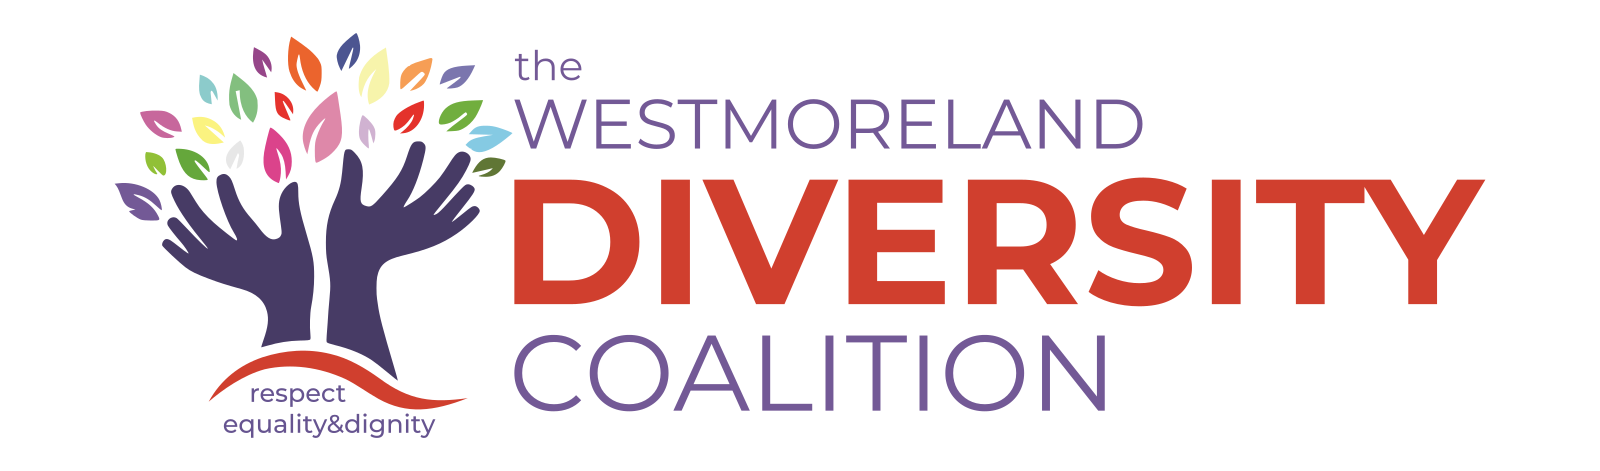 Westmoreland Diversity Coalition – Make Our Differences Our Stengths